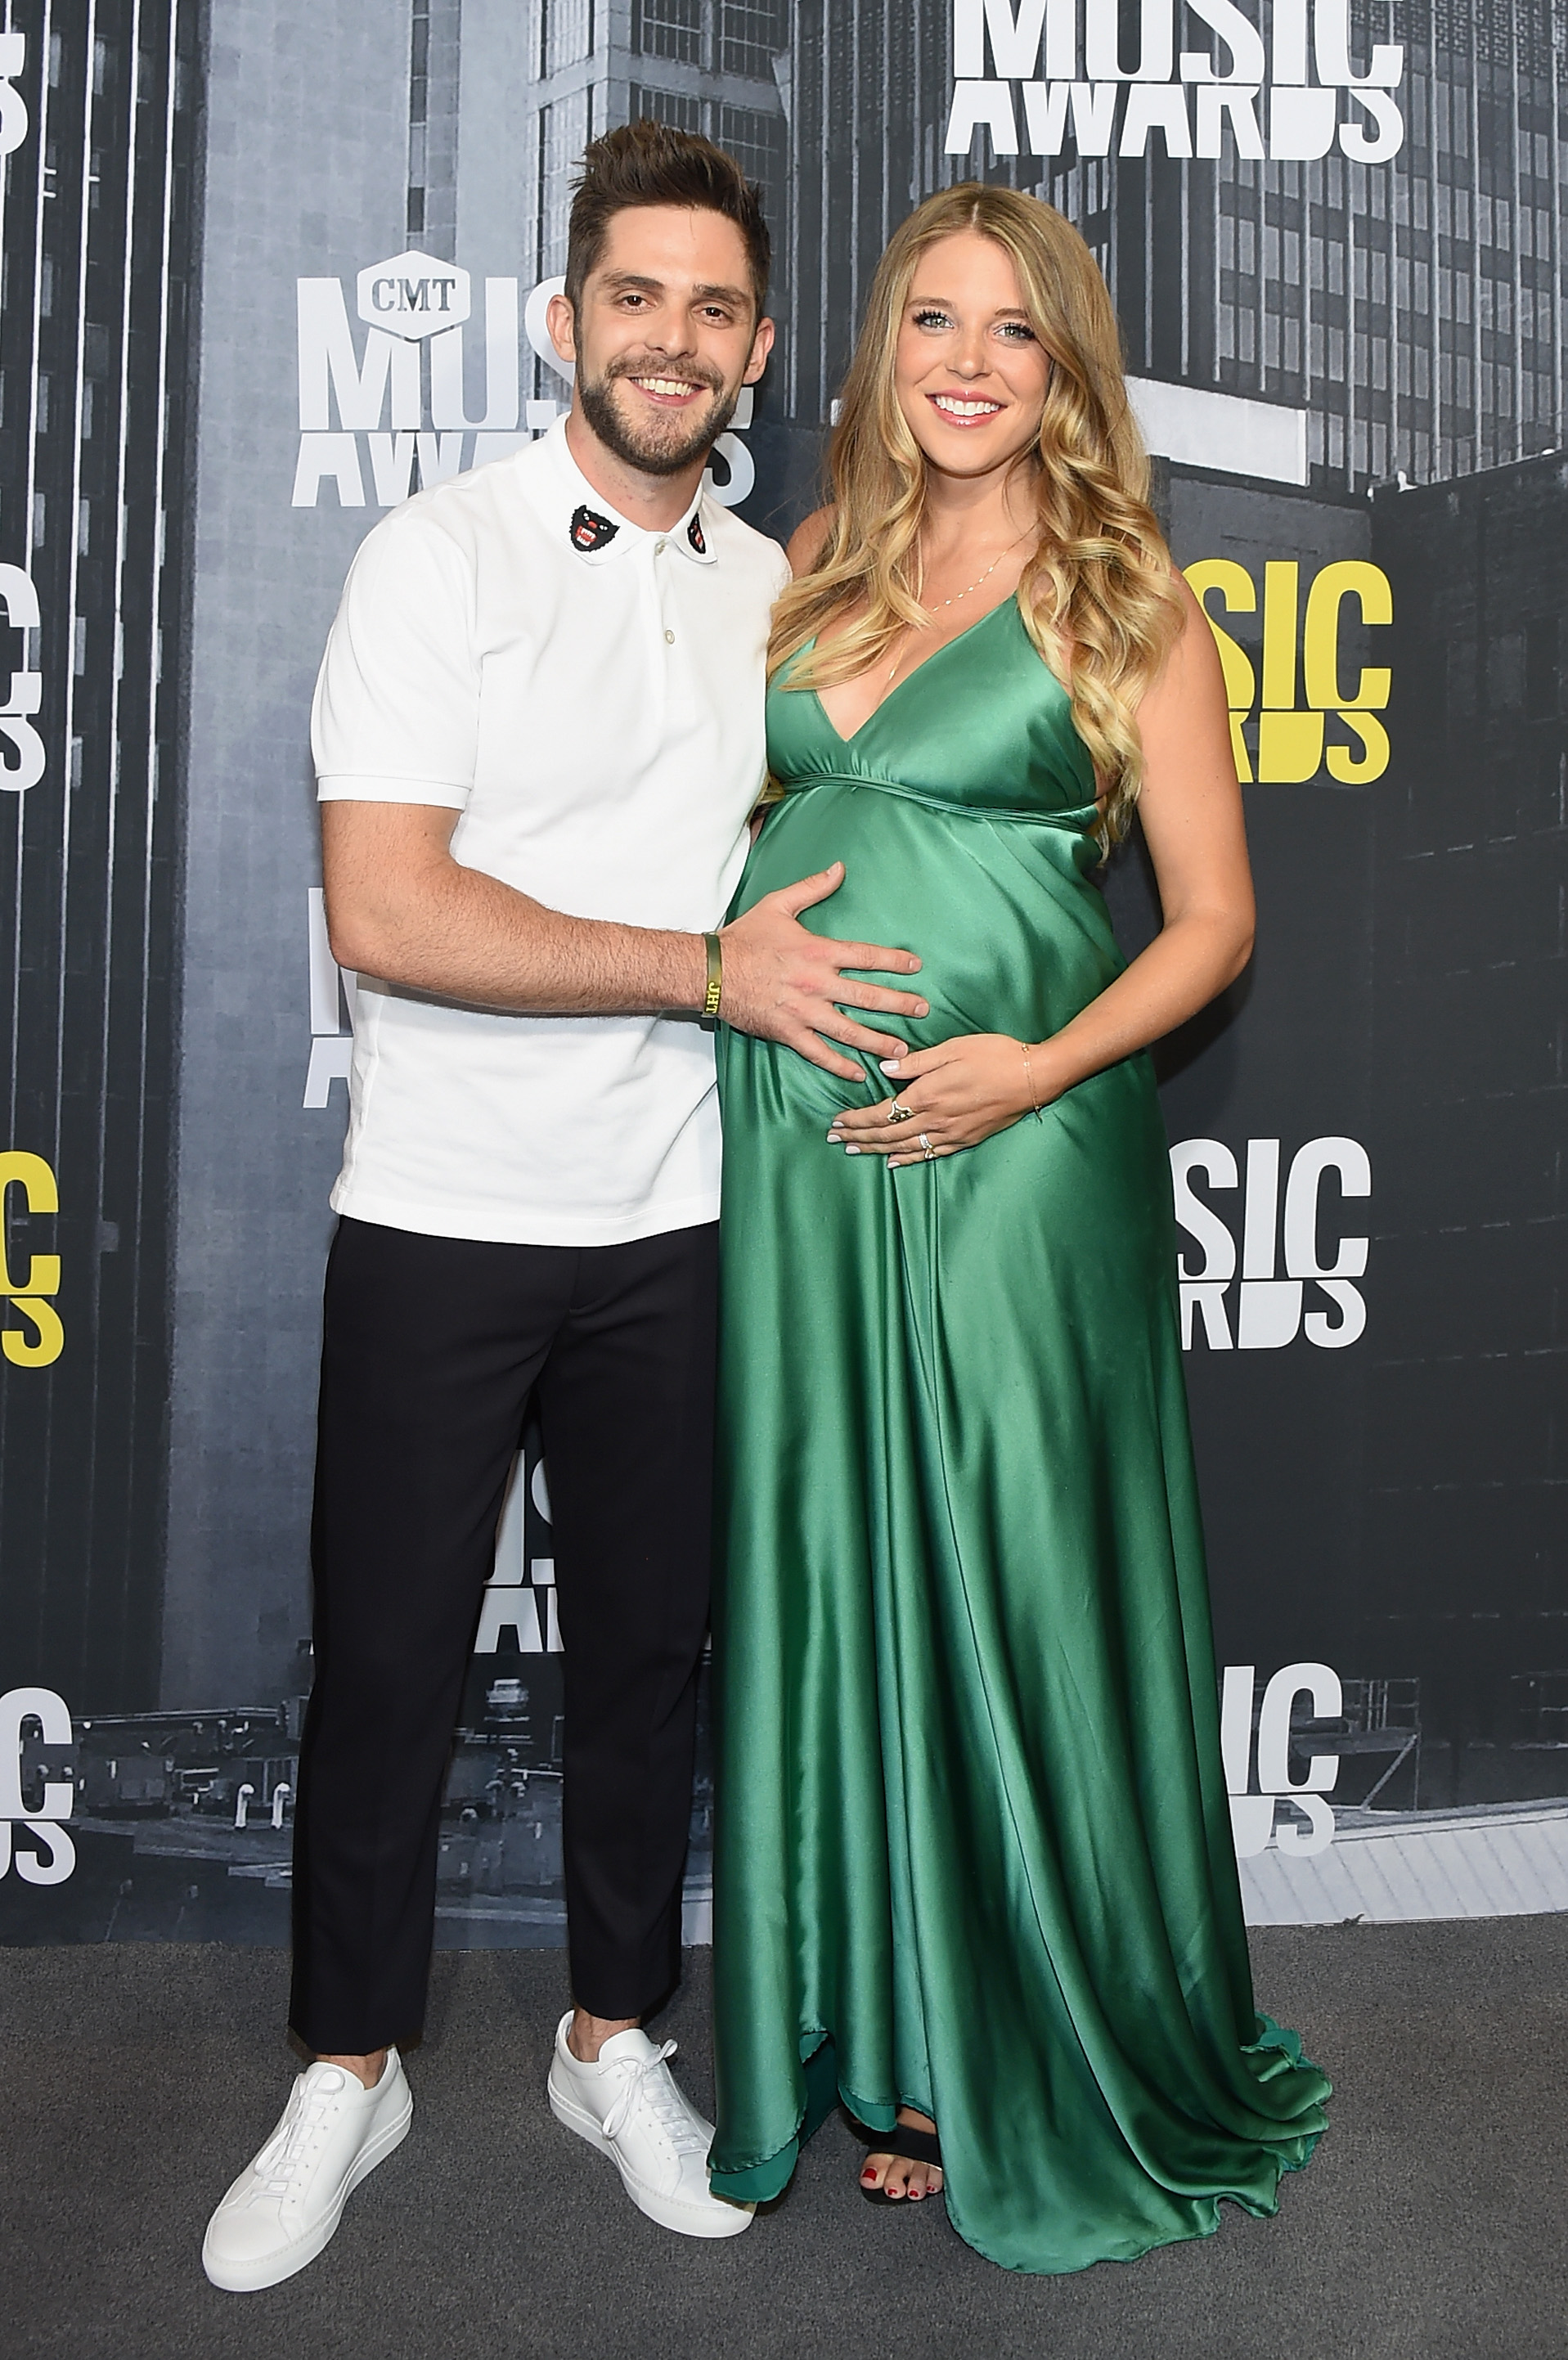 NASHVILLE, TN - JUNE 07: Musician Thomas Rhett and wife Lauren Akins attend the 2017 CMT Music Awards at the Music City Center on June 7, 2017 in Nashville, Tennessee. (Photo by Michael Loccisano/Getty Images For CMT)